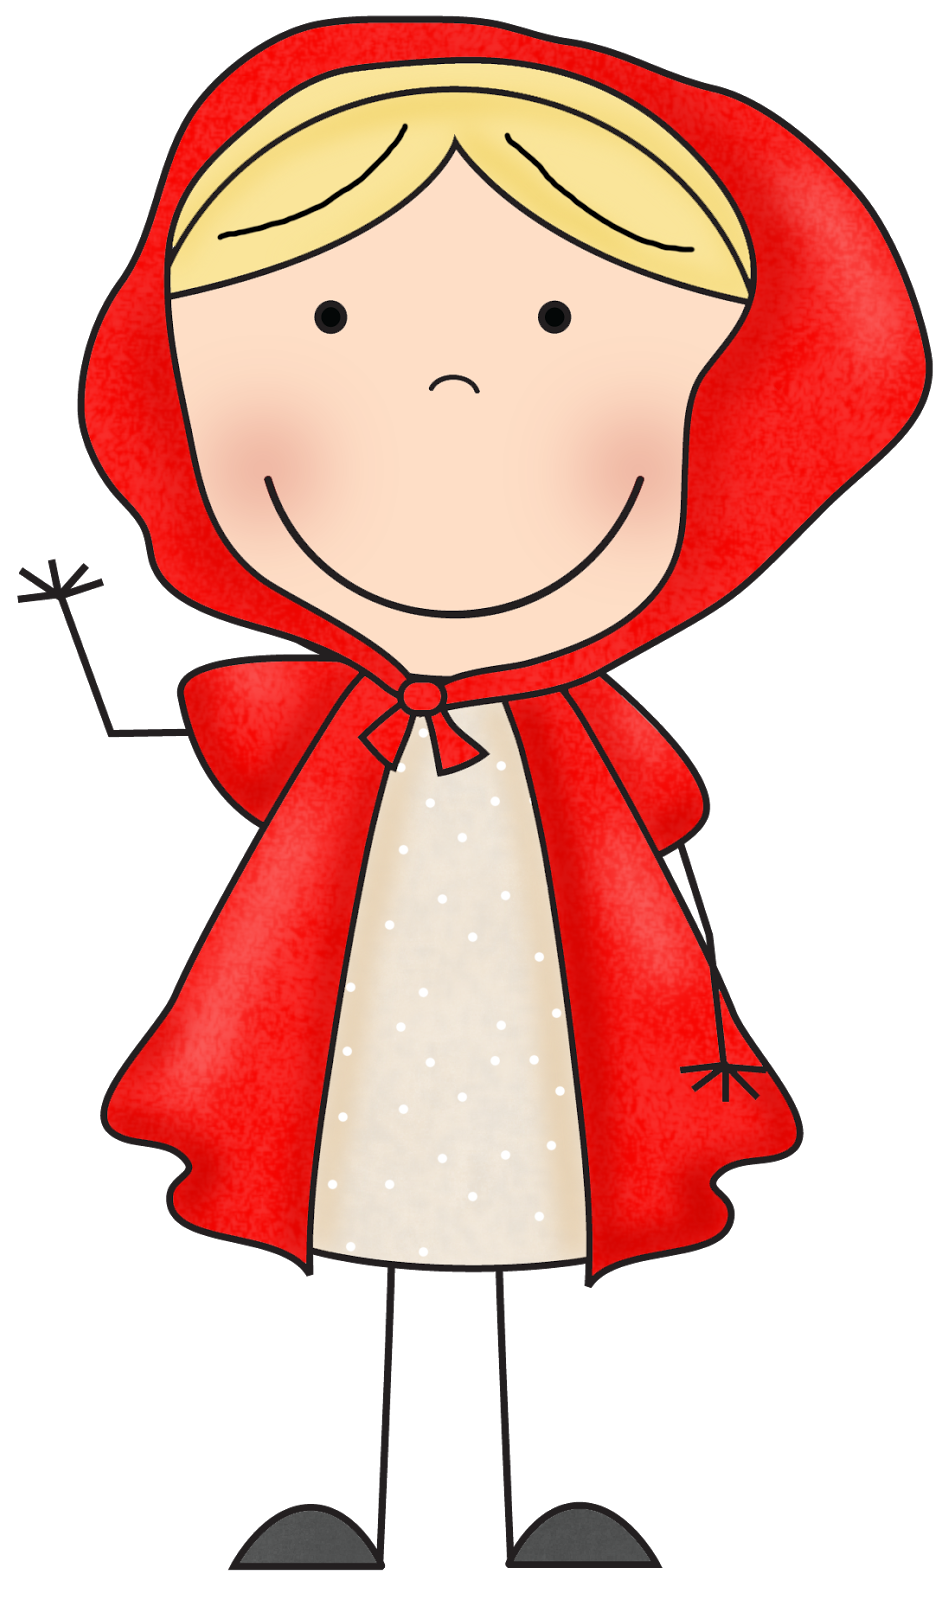 Red Riding Hood clipart Clipart Elena doodles on Pin